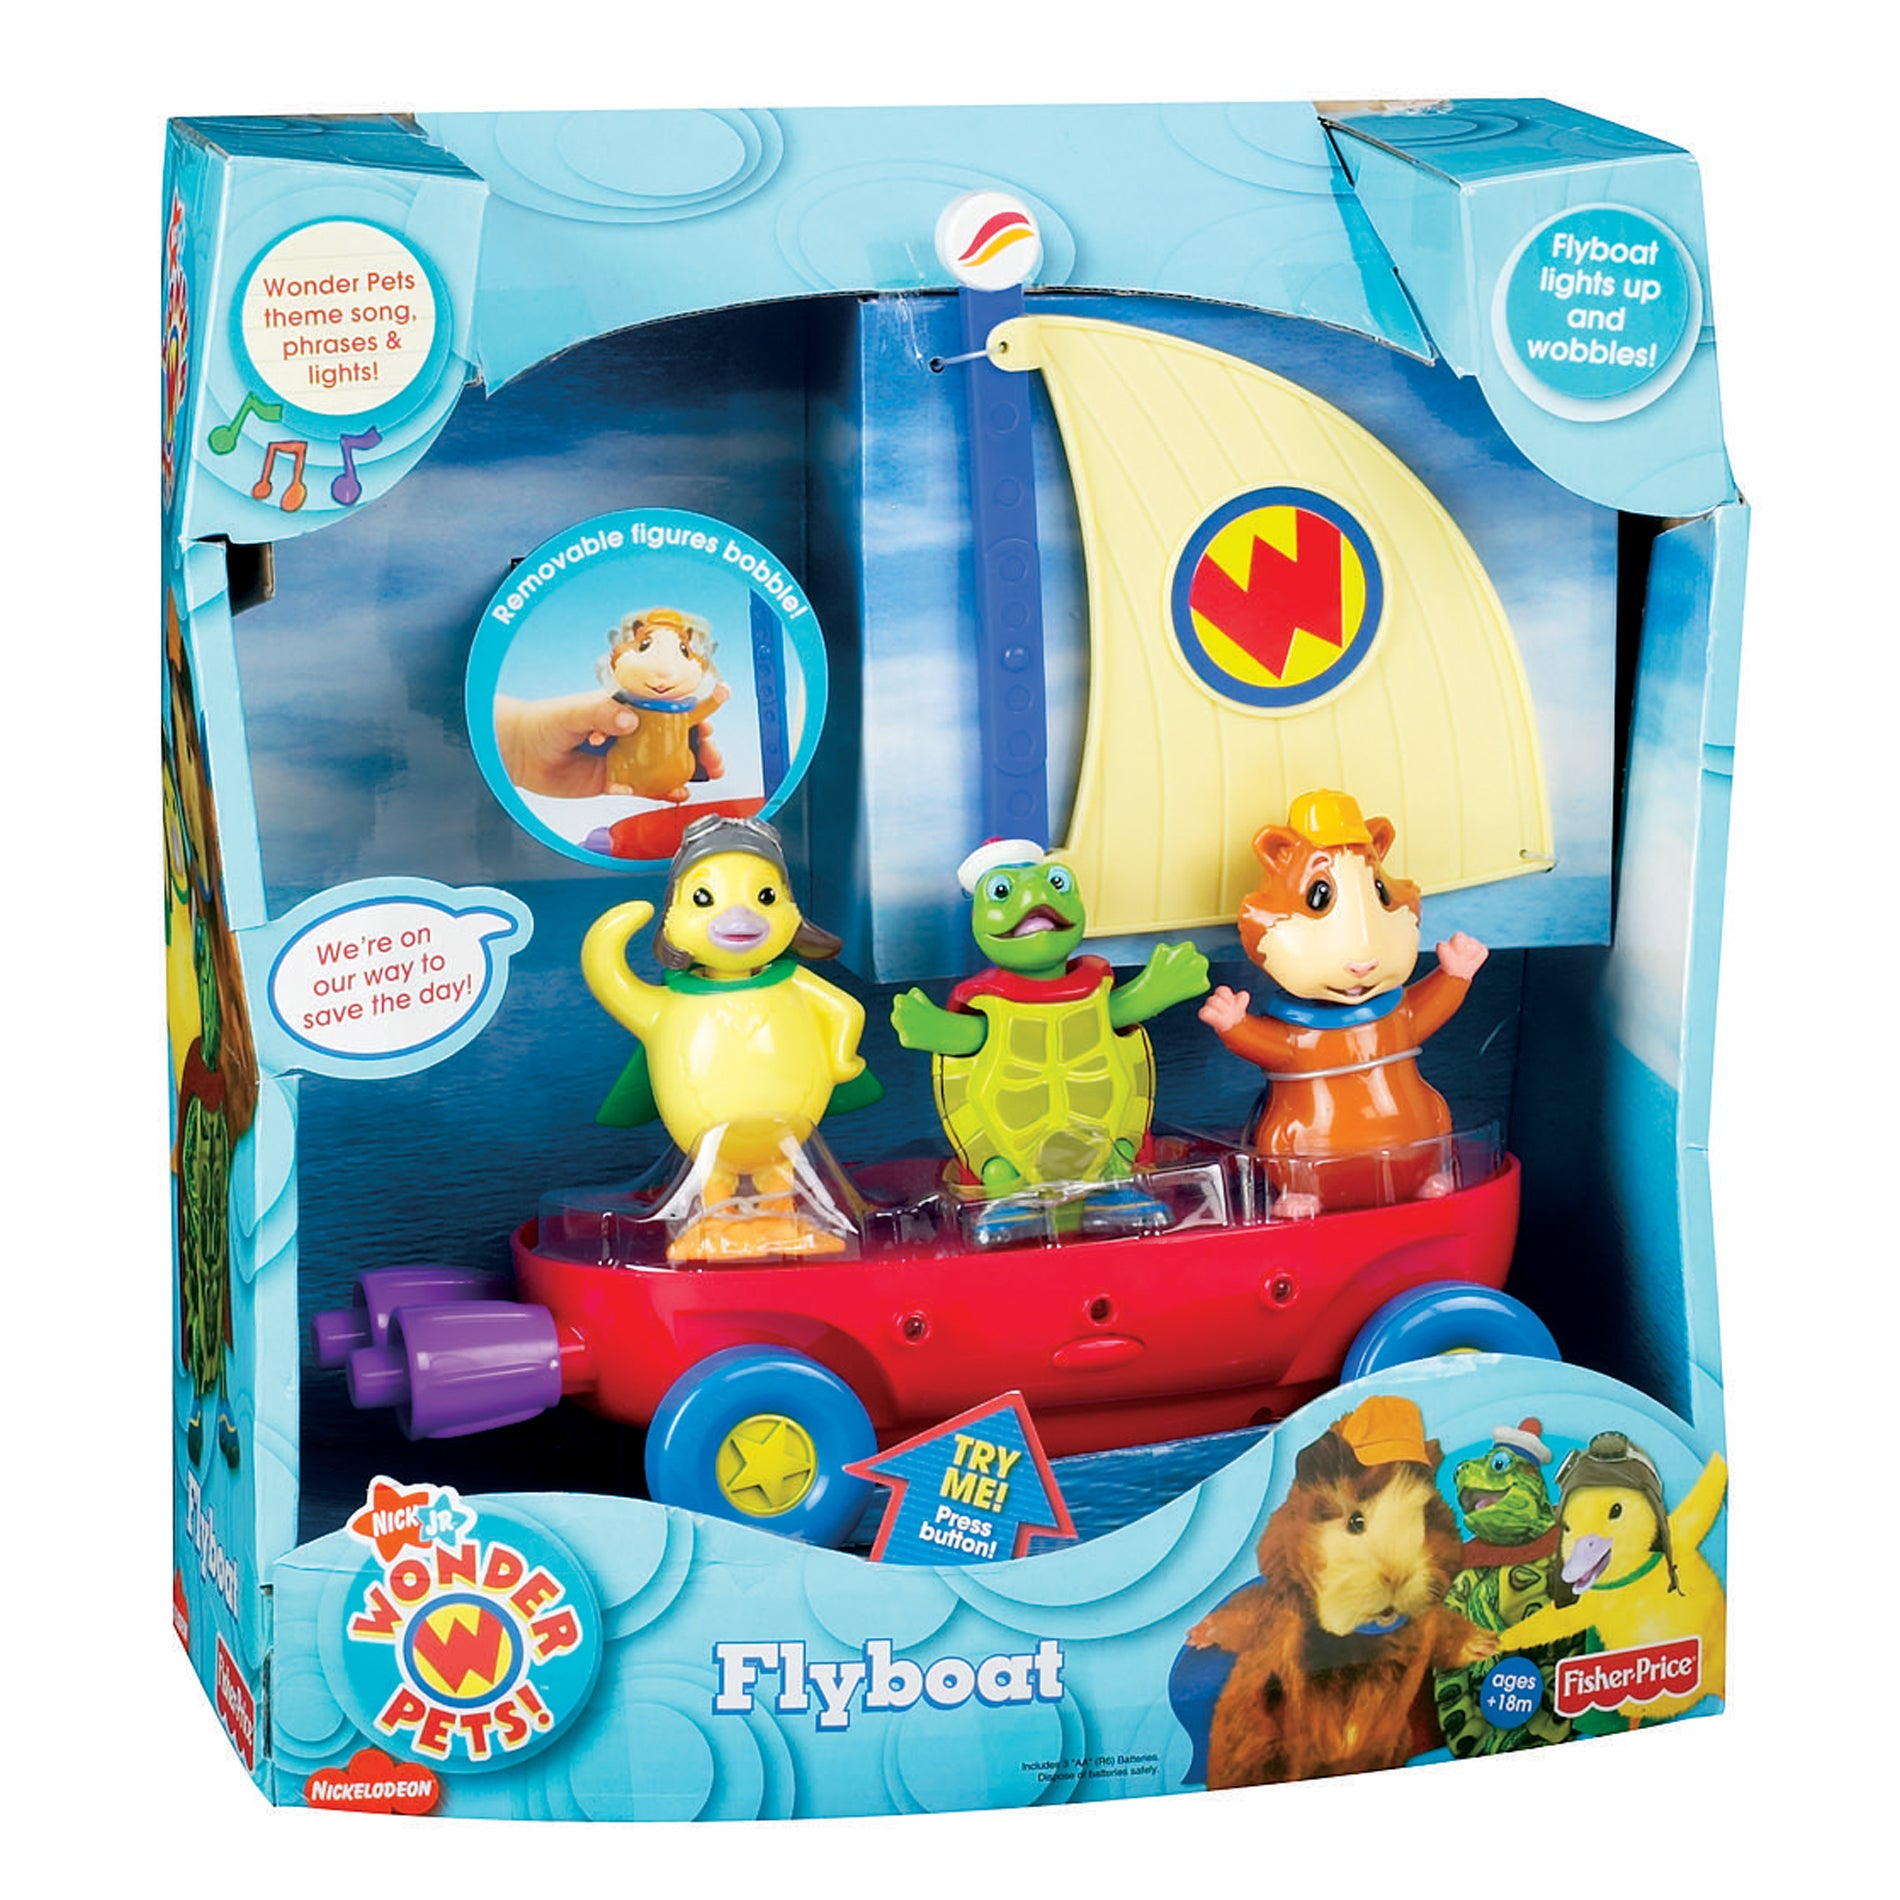 Fisher Price Wonder Pets Flyboat Play Set - Overstock™ Shopping ...: www.overstock.com/Sports-Toys/Fisher-Price-Wonder-Pets-Flyboat-Play...